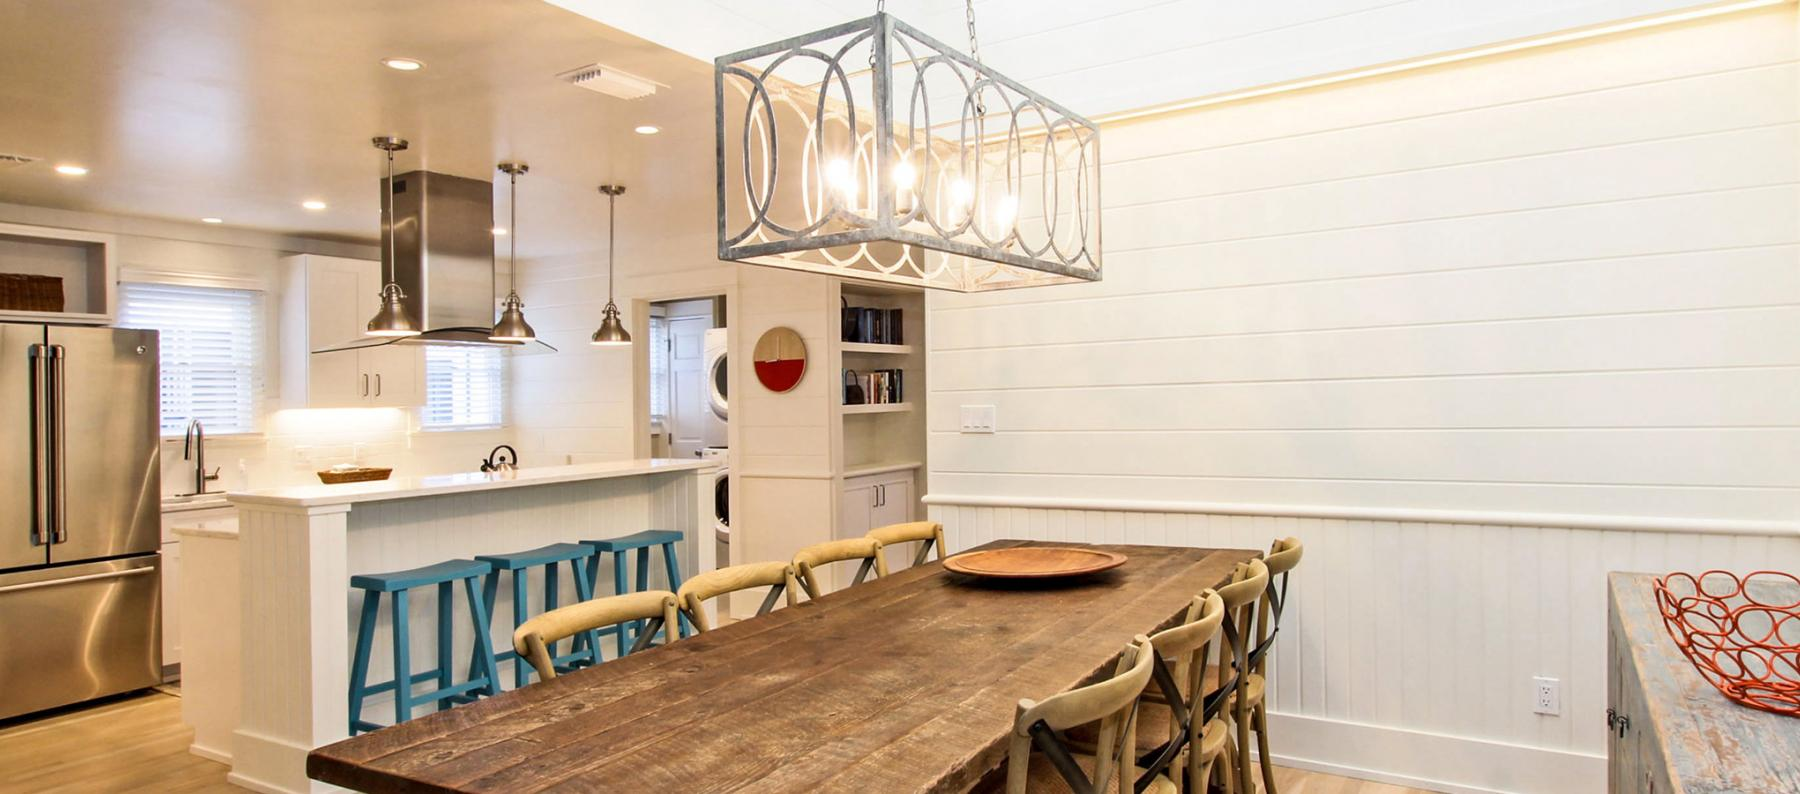 Fresh Cream cottage in Seaside, Florida